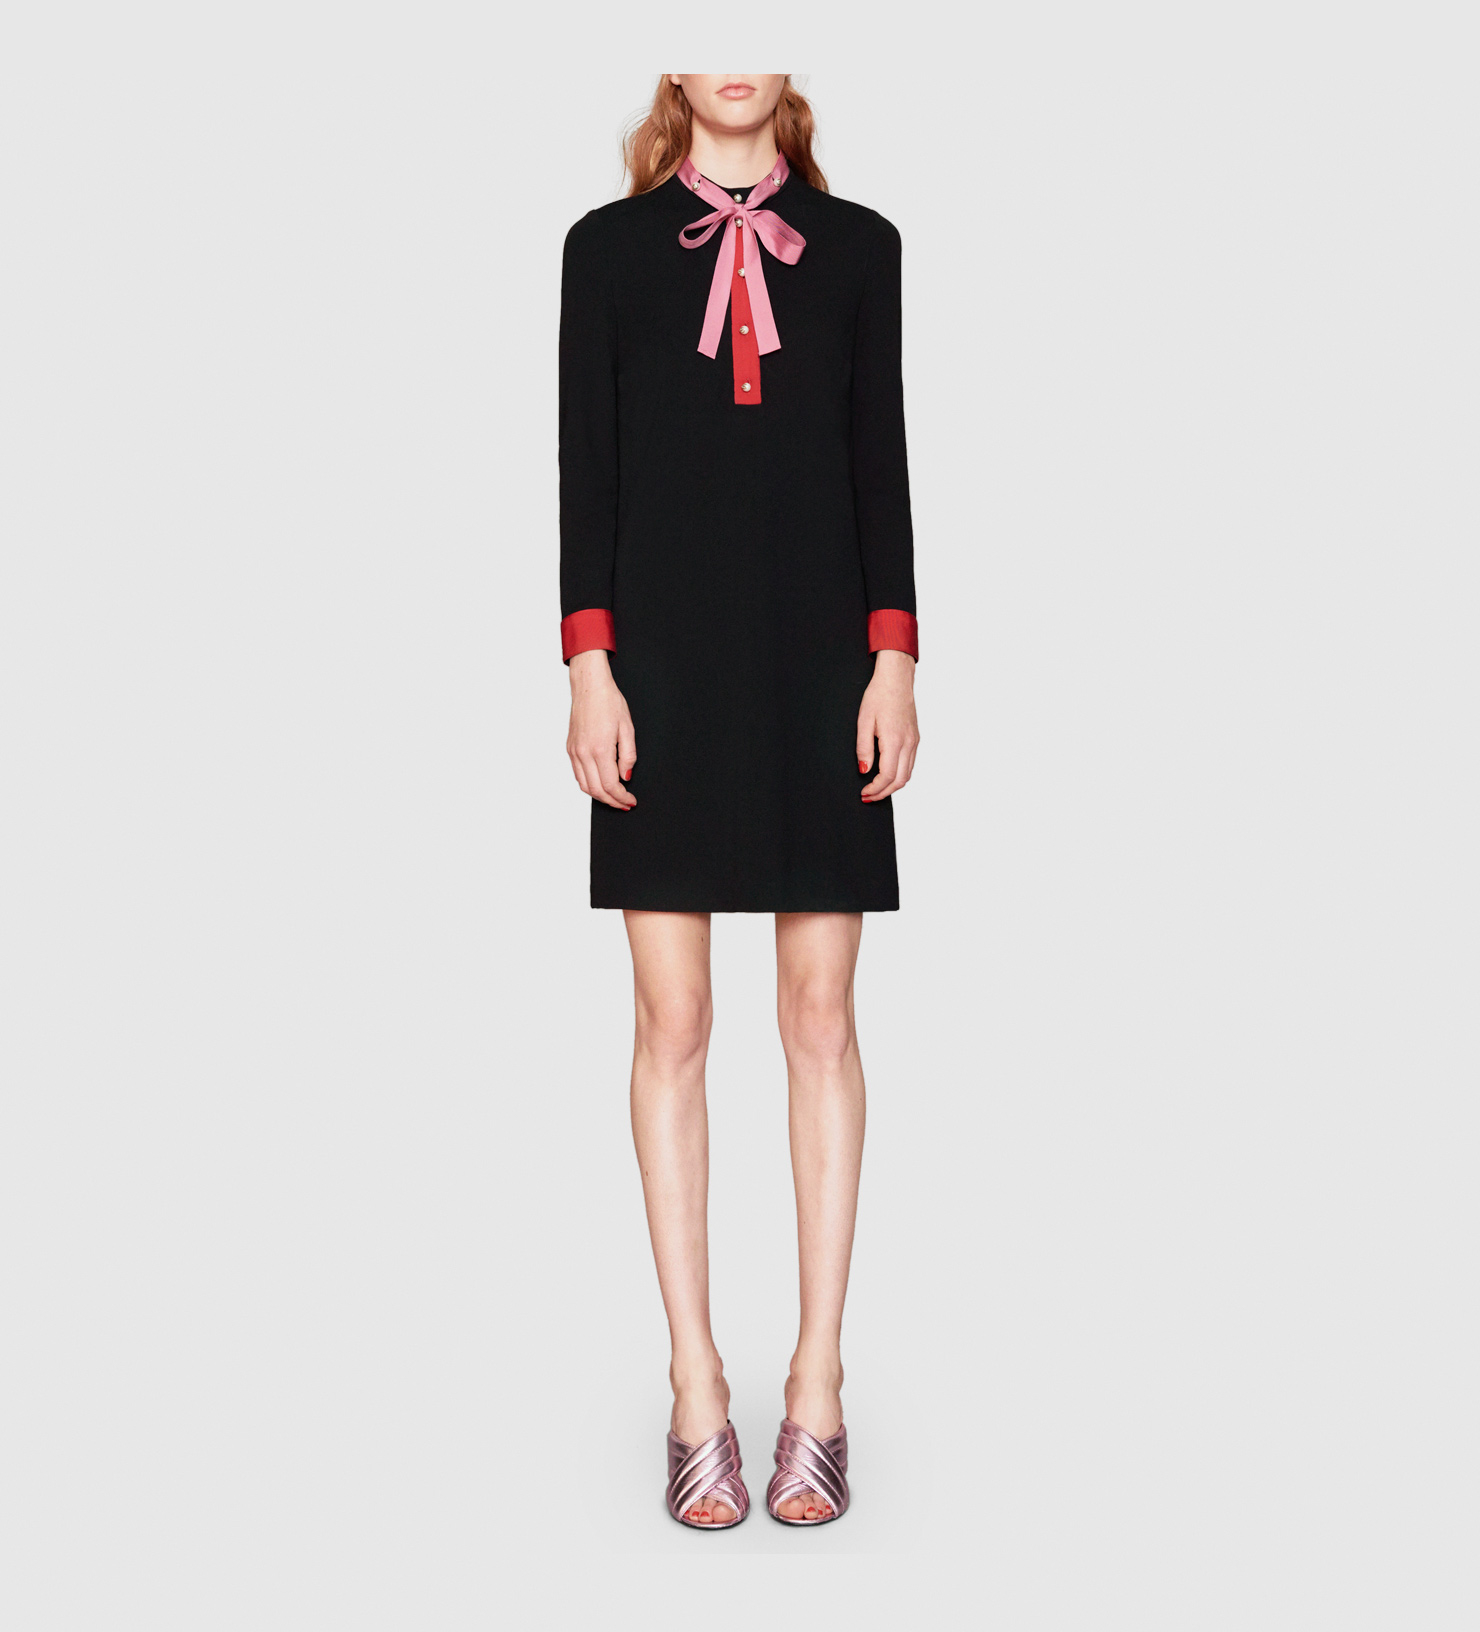 Gucci stretch viscose shirt dress in black lyst for How to stretch a dress shirt